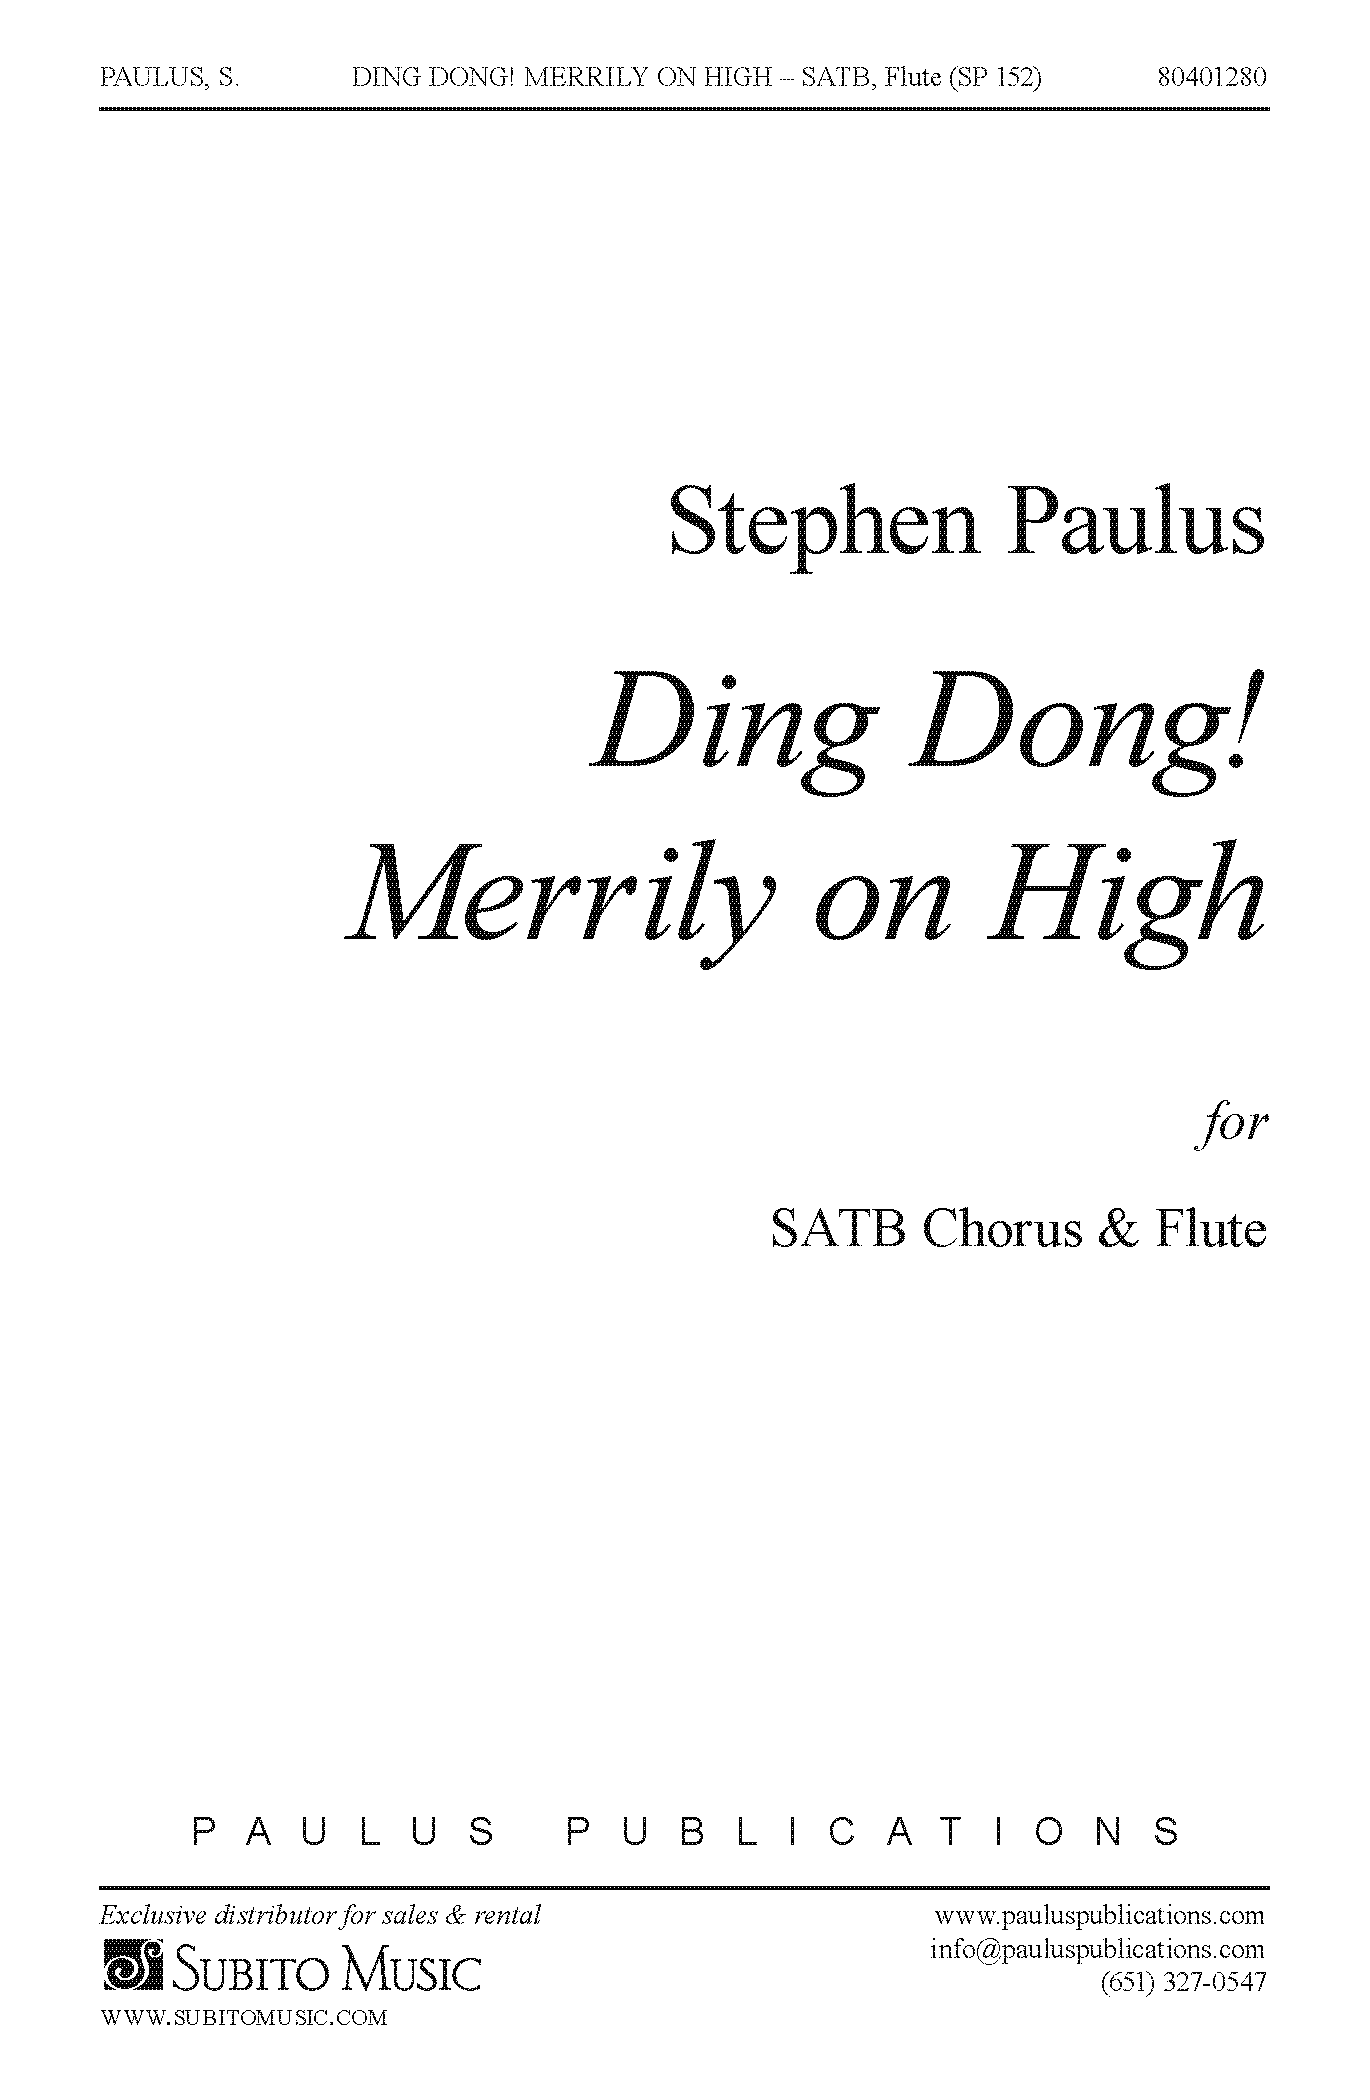 Ding, Dong! Merrily on High for SATB Chorus & Flute